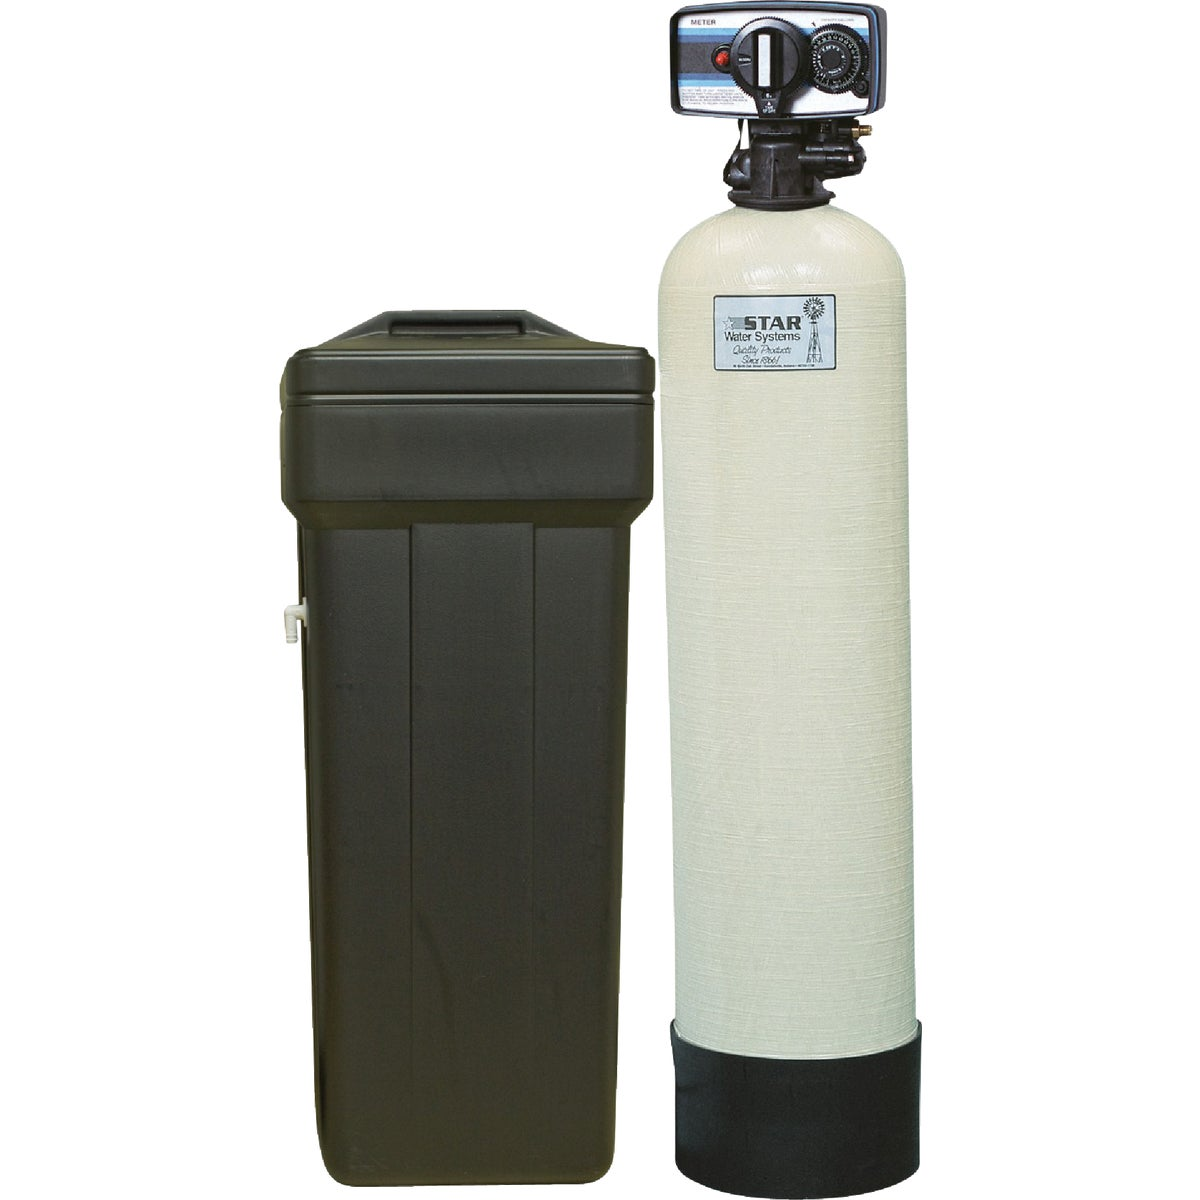 WATER SOFTENER - S07FS32DR by Star Water Systems